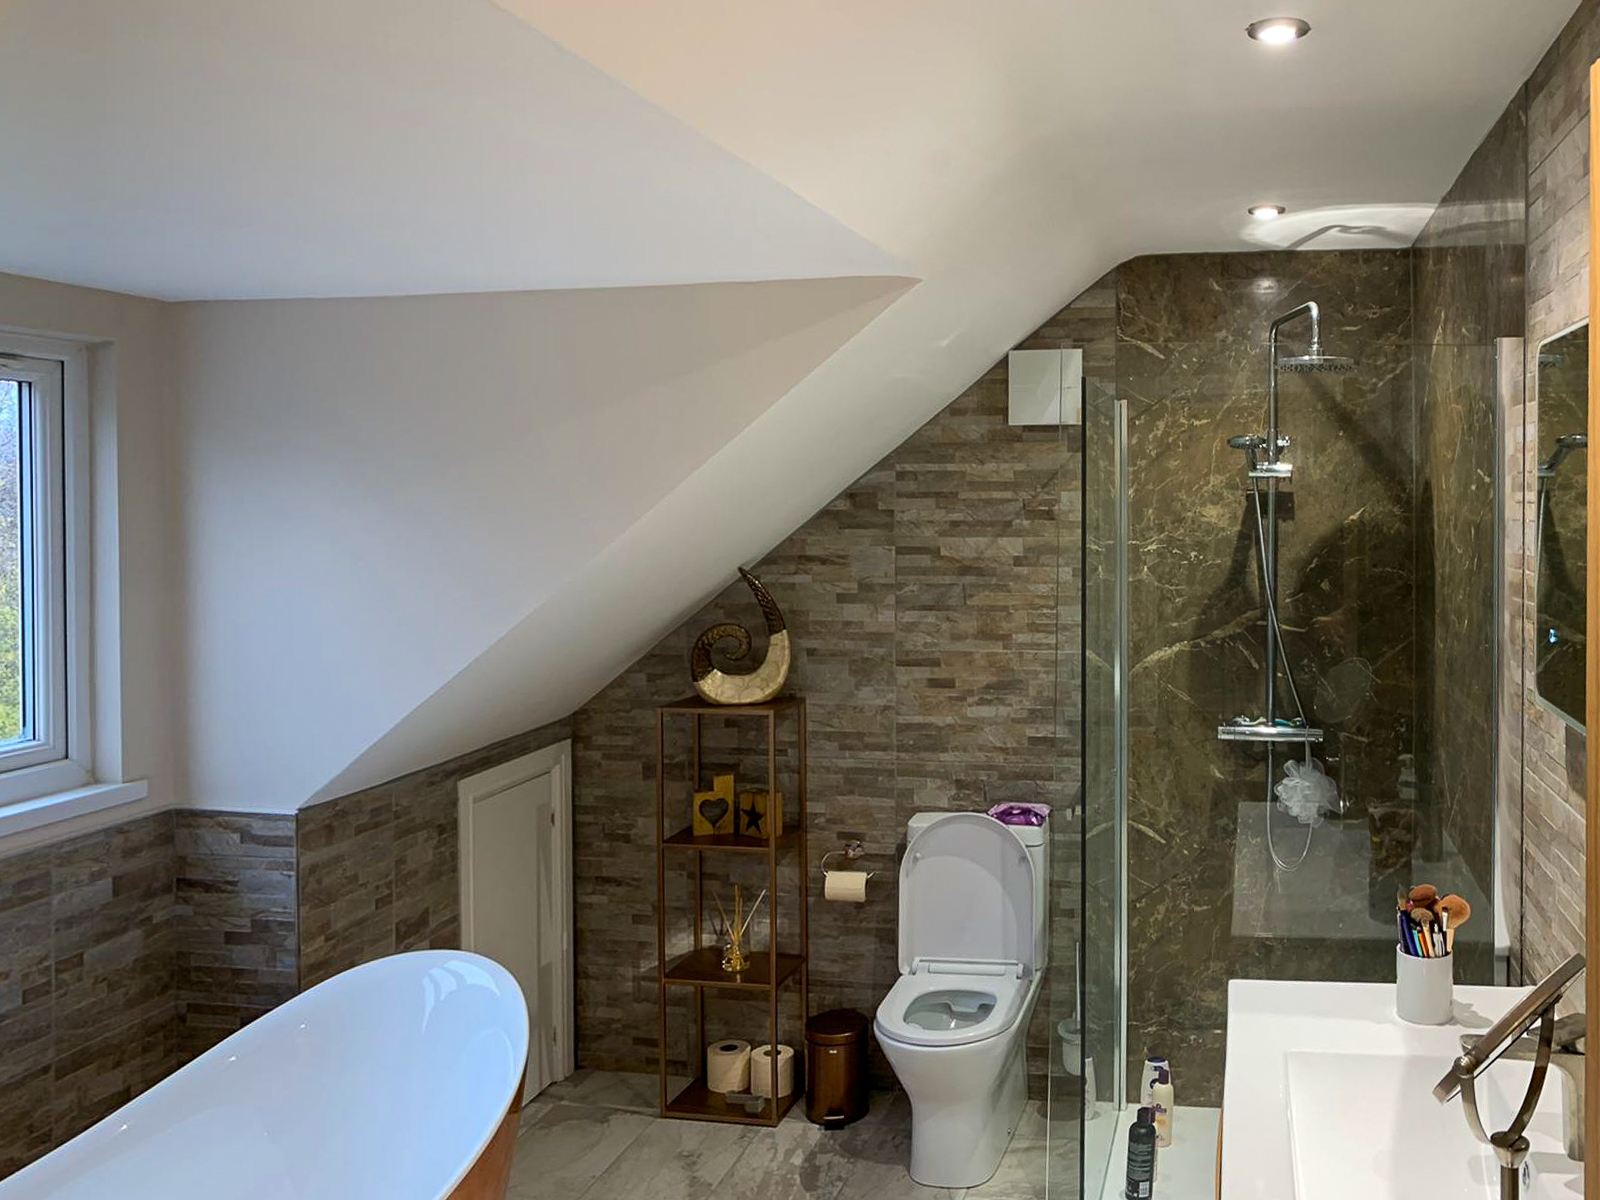 bathroom and sloping ceiling in bathroom of double extension